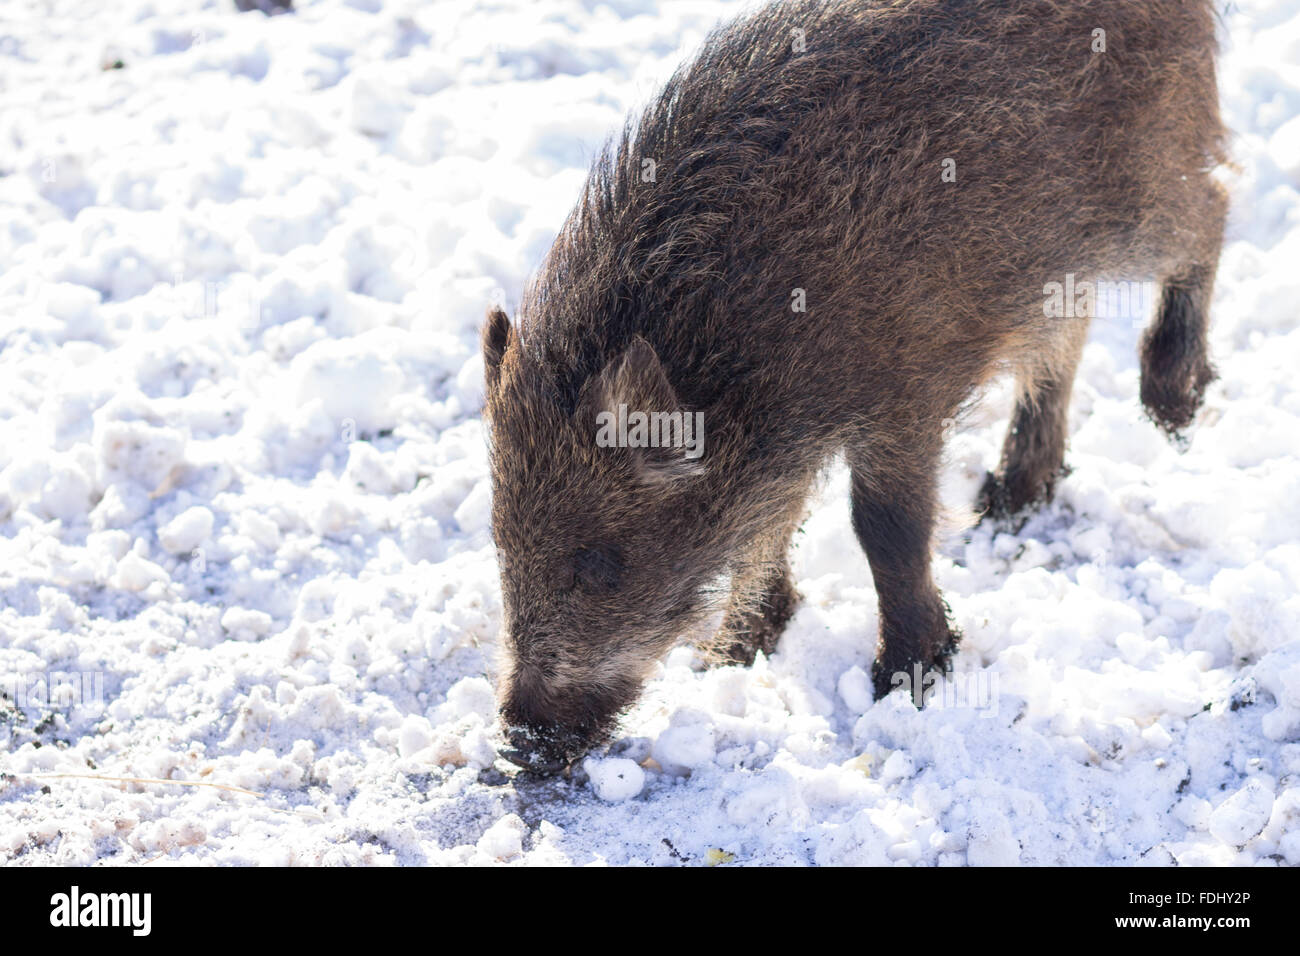 pig wild boar looking for food in snow. wildlife animal background